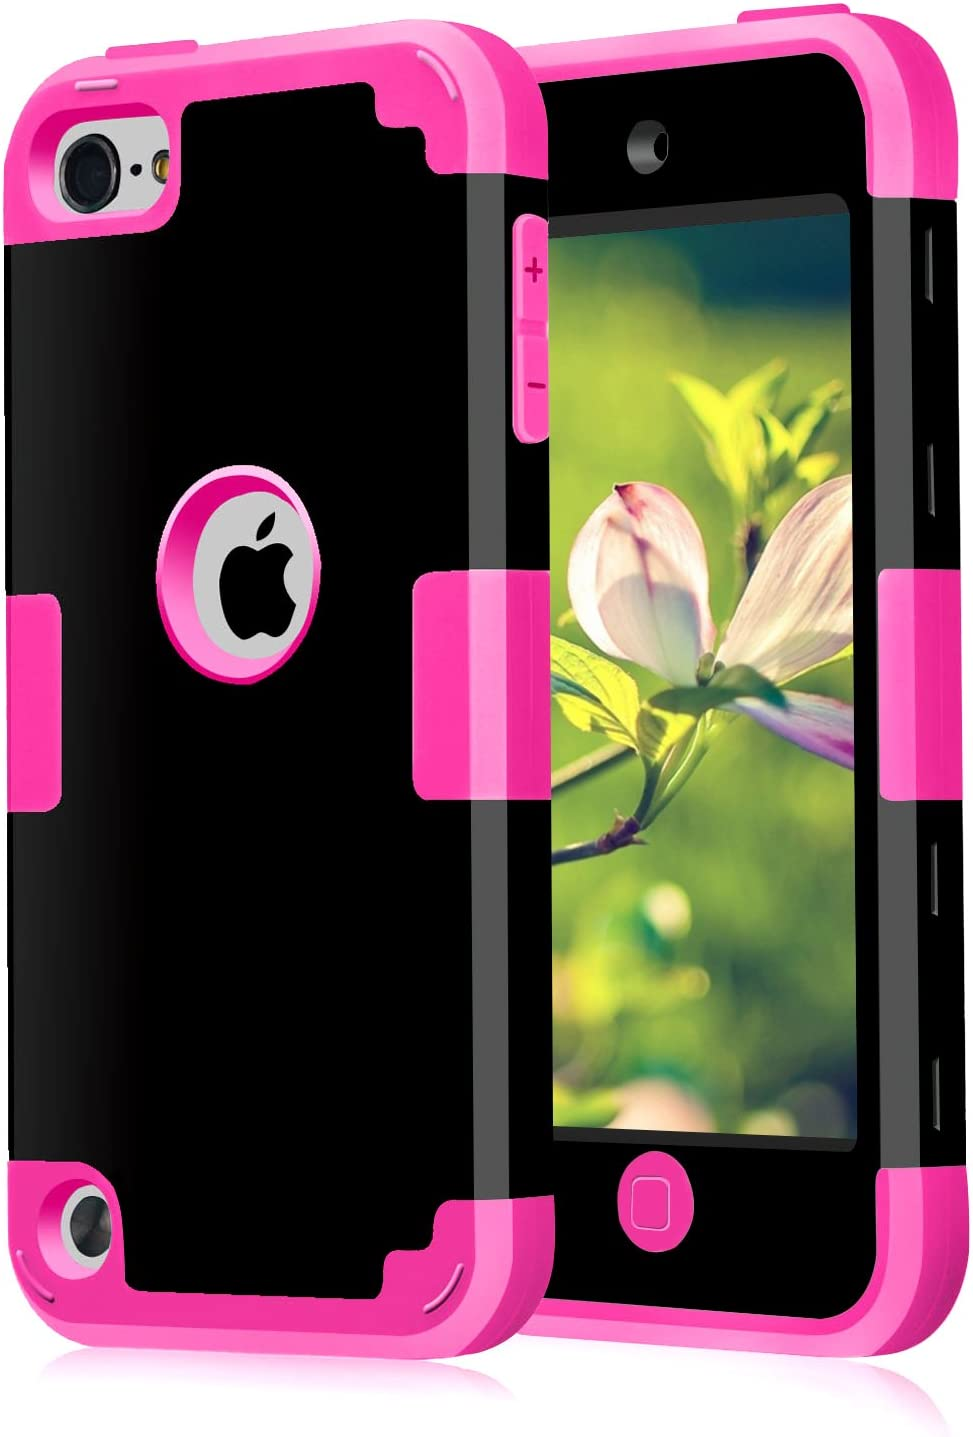 Case for iPod Touch 5 Case for iPod Touch 6 Case, Dual 3 in 1 Hard PC Case + Silicone Shockproof Heavy Duty High Impact Armor Hard Case Cover for Apple iPod Touch 5 6th Generation (Black+hot Pink)